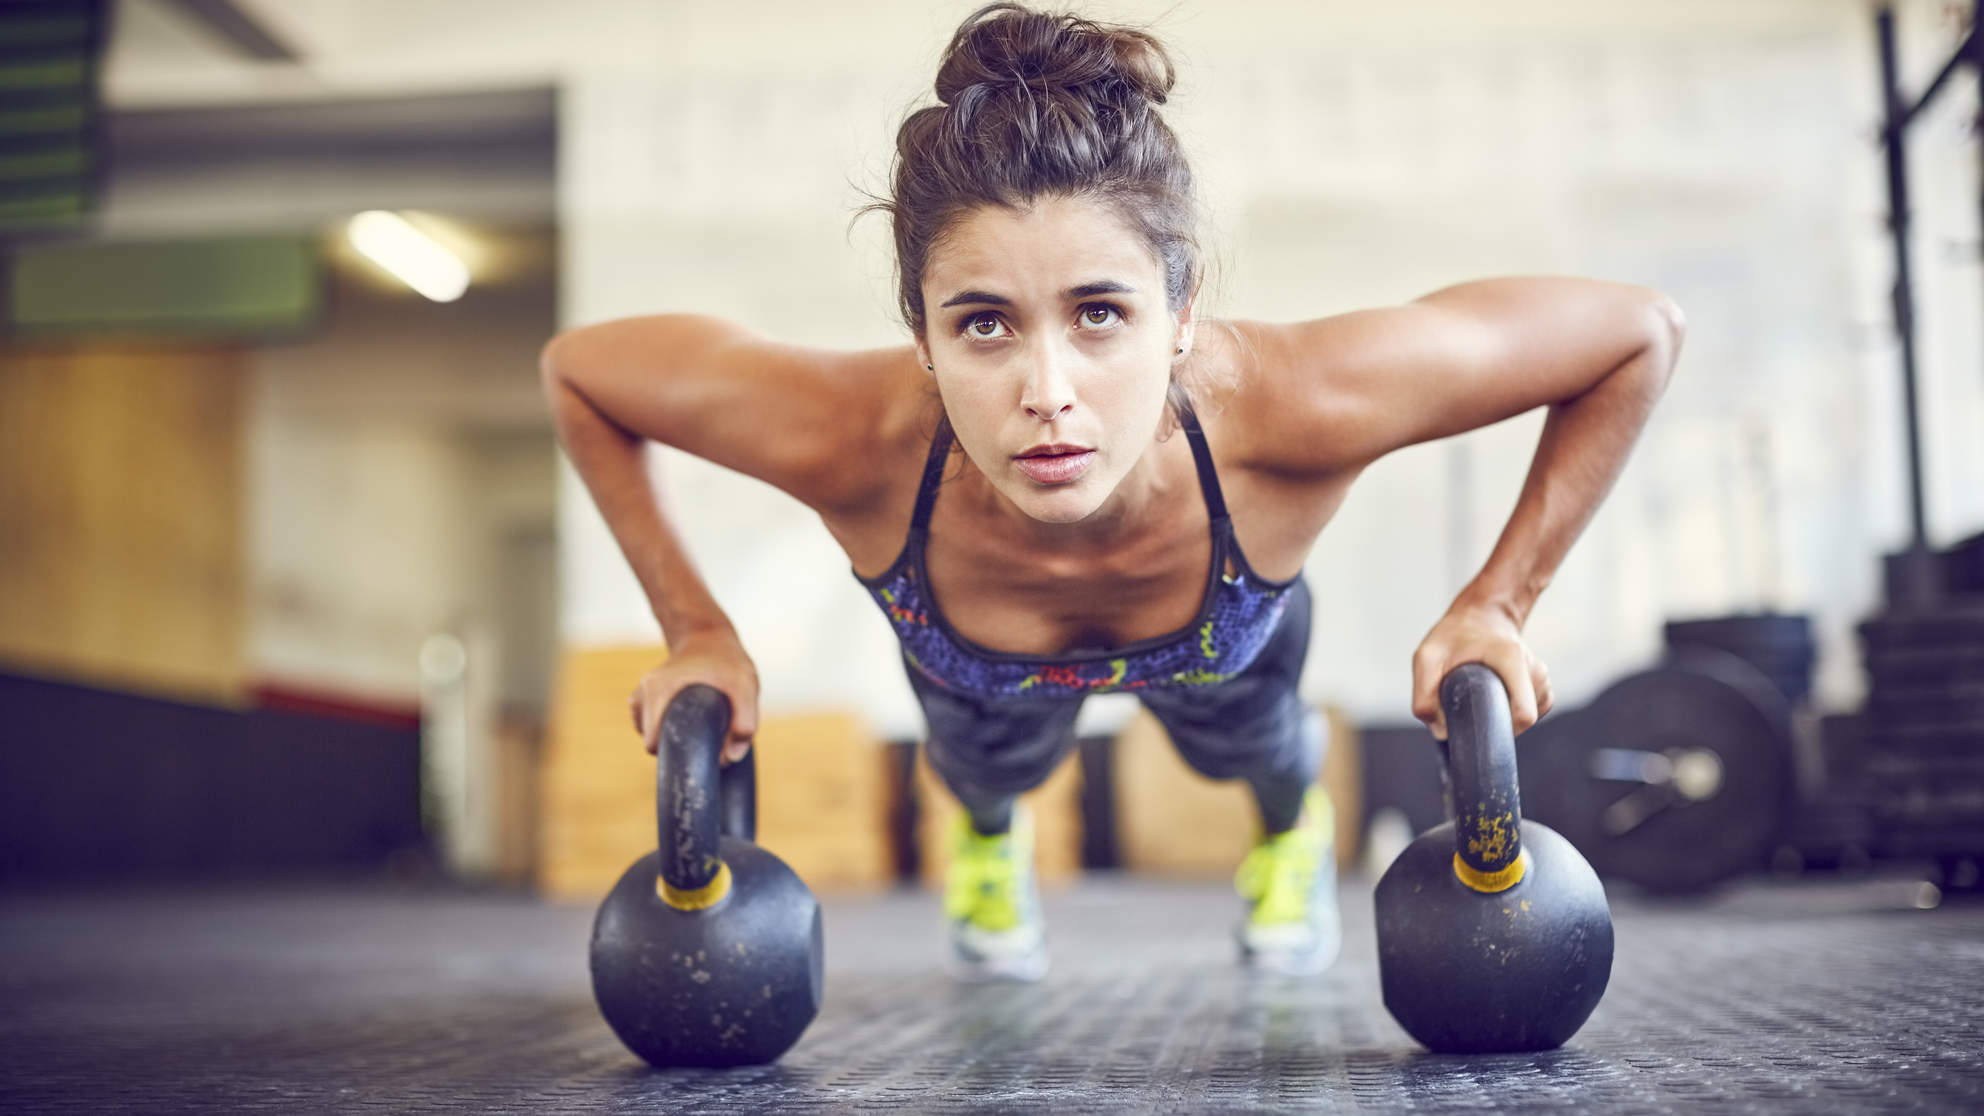 crossfit-kettlebell-gym